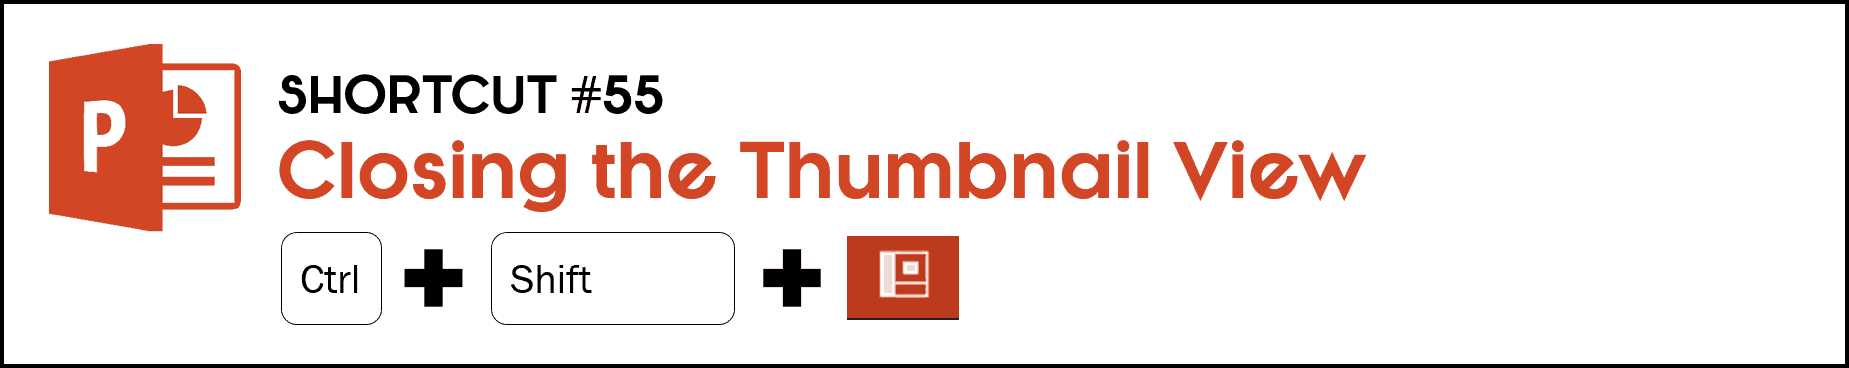 To close out of the thumbnail view in PowerPoint, hold the Control plus Shift keys and click the normal view icon at the bottom of your PowerPoint workspace